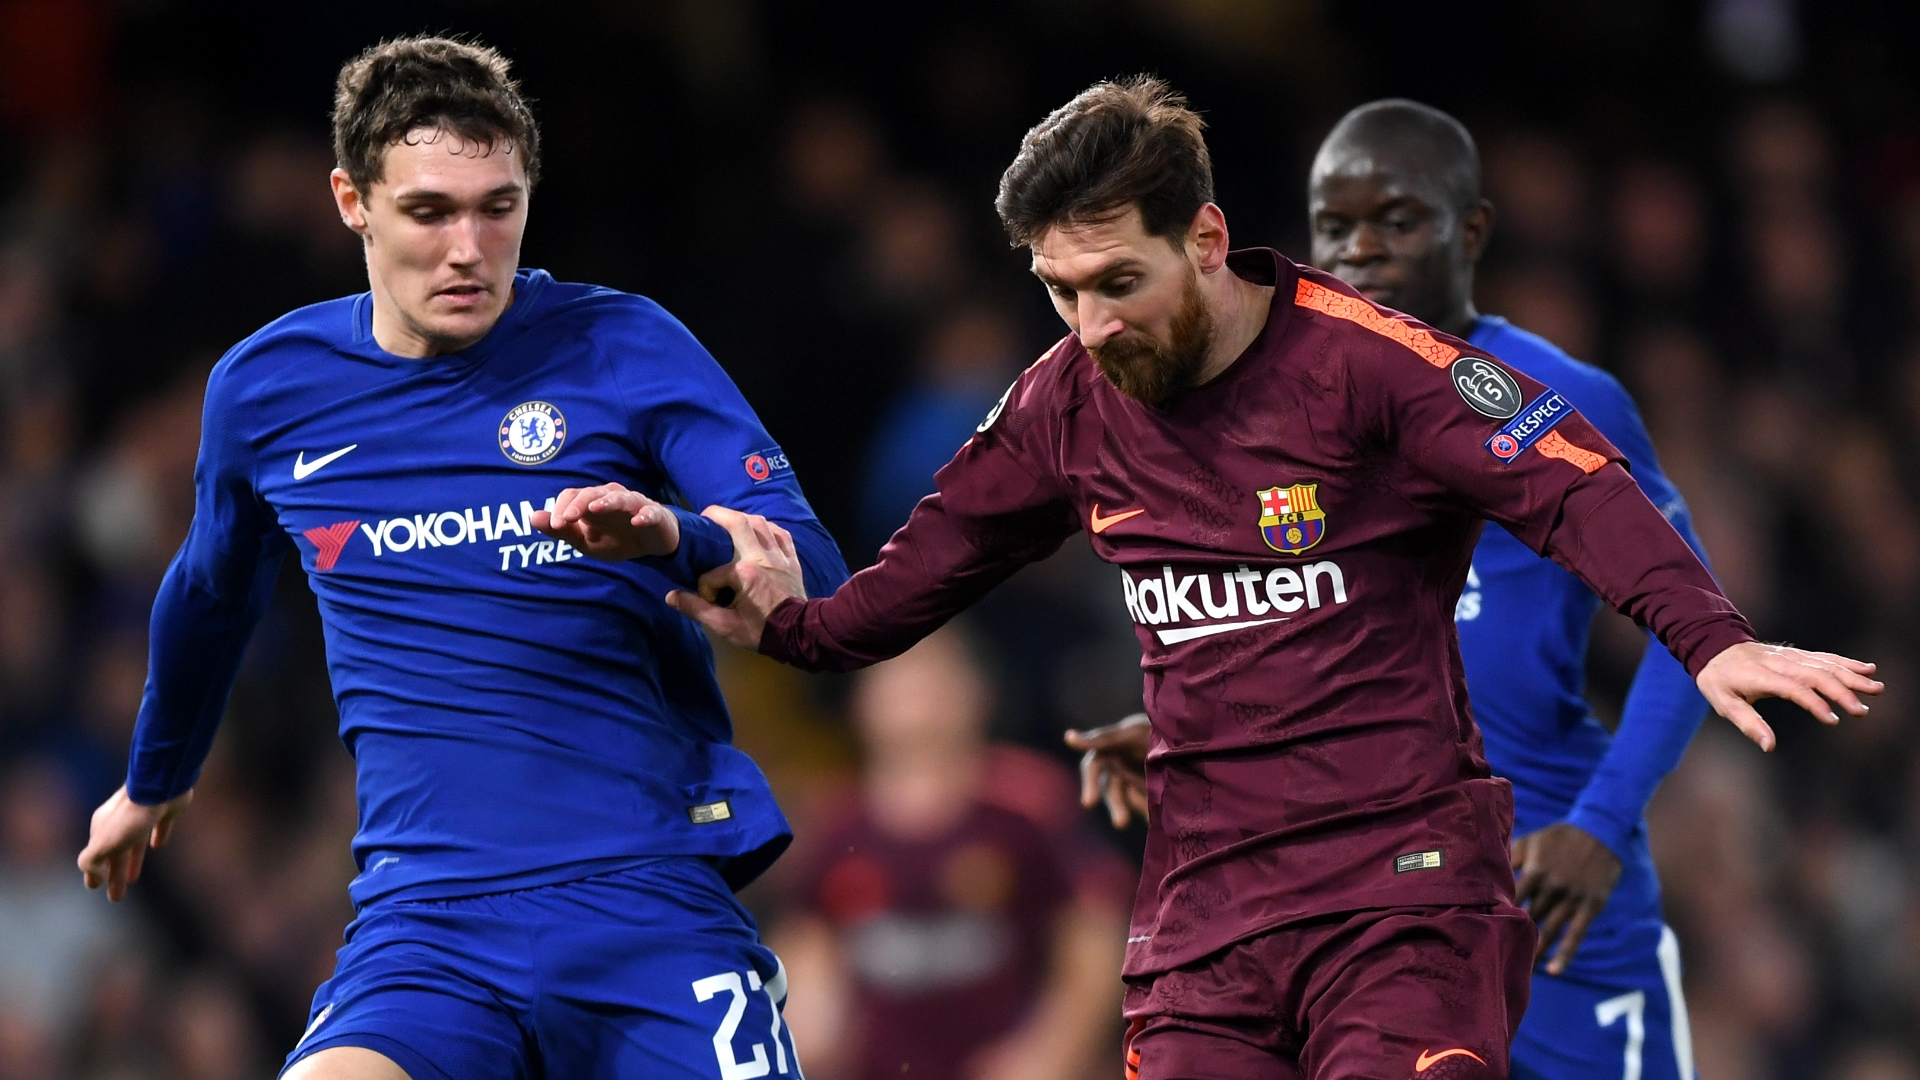 Barcelona – Chelsea: Canh bạc tất tay của Conte